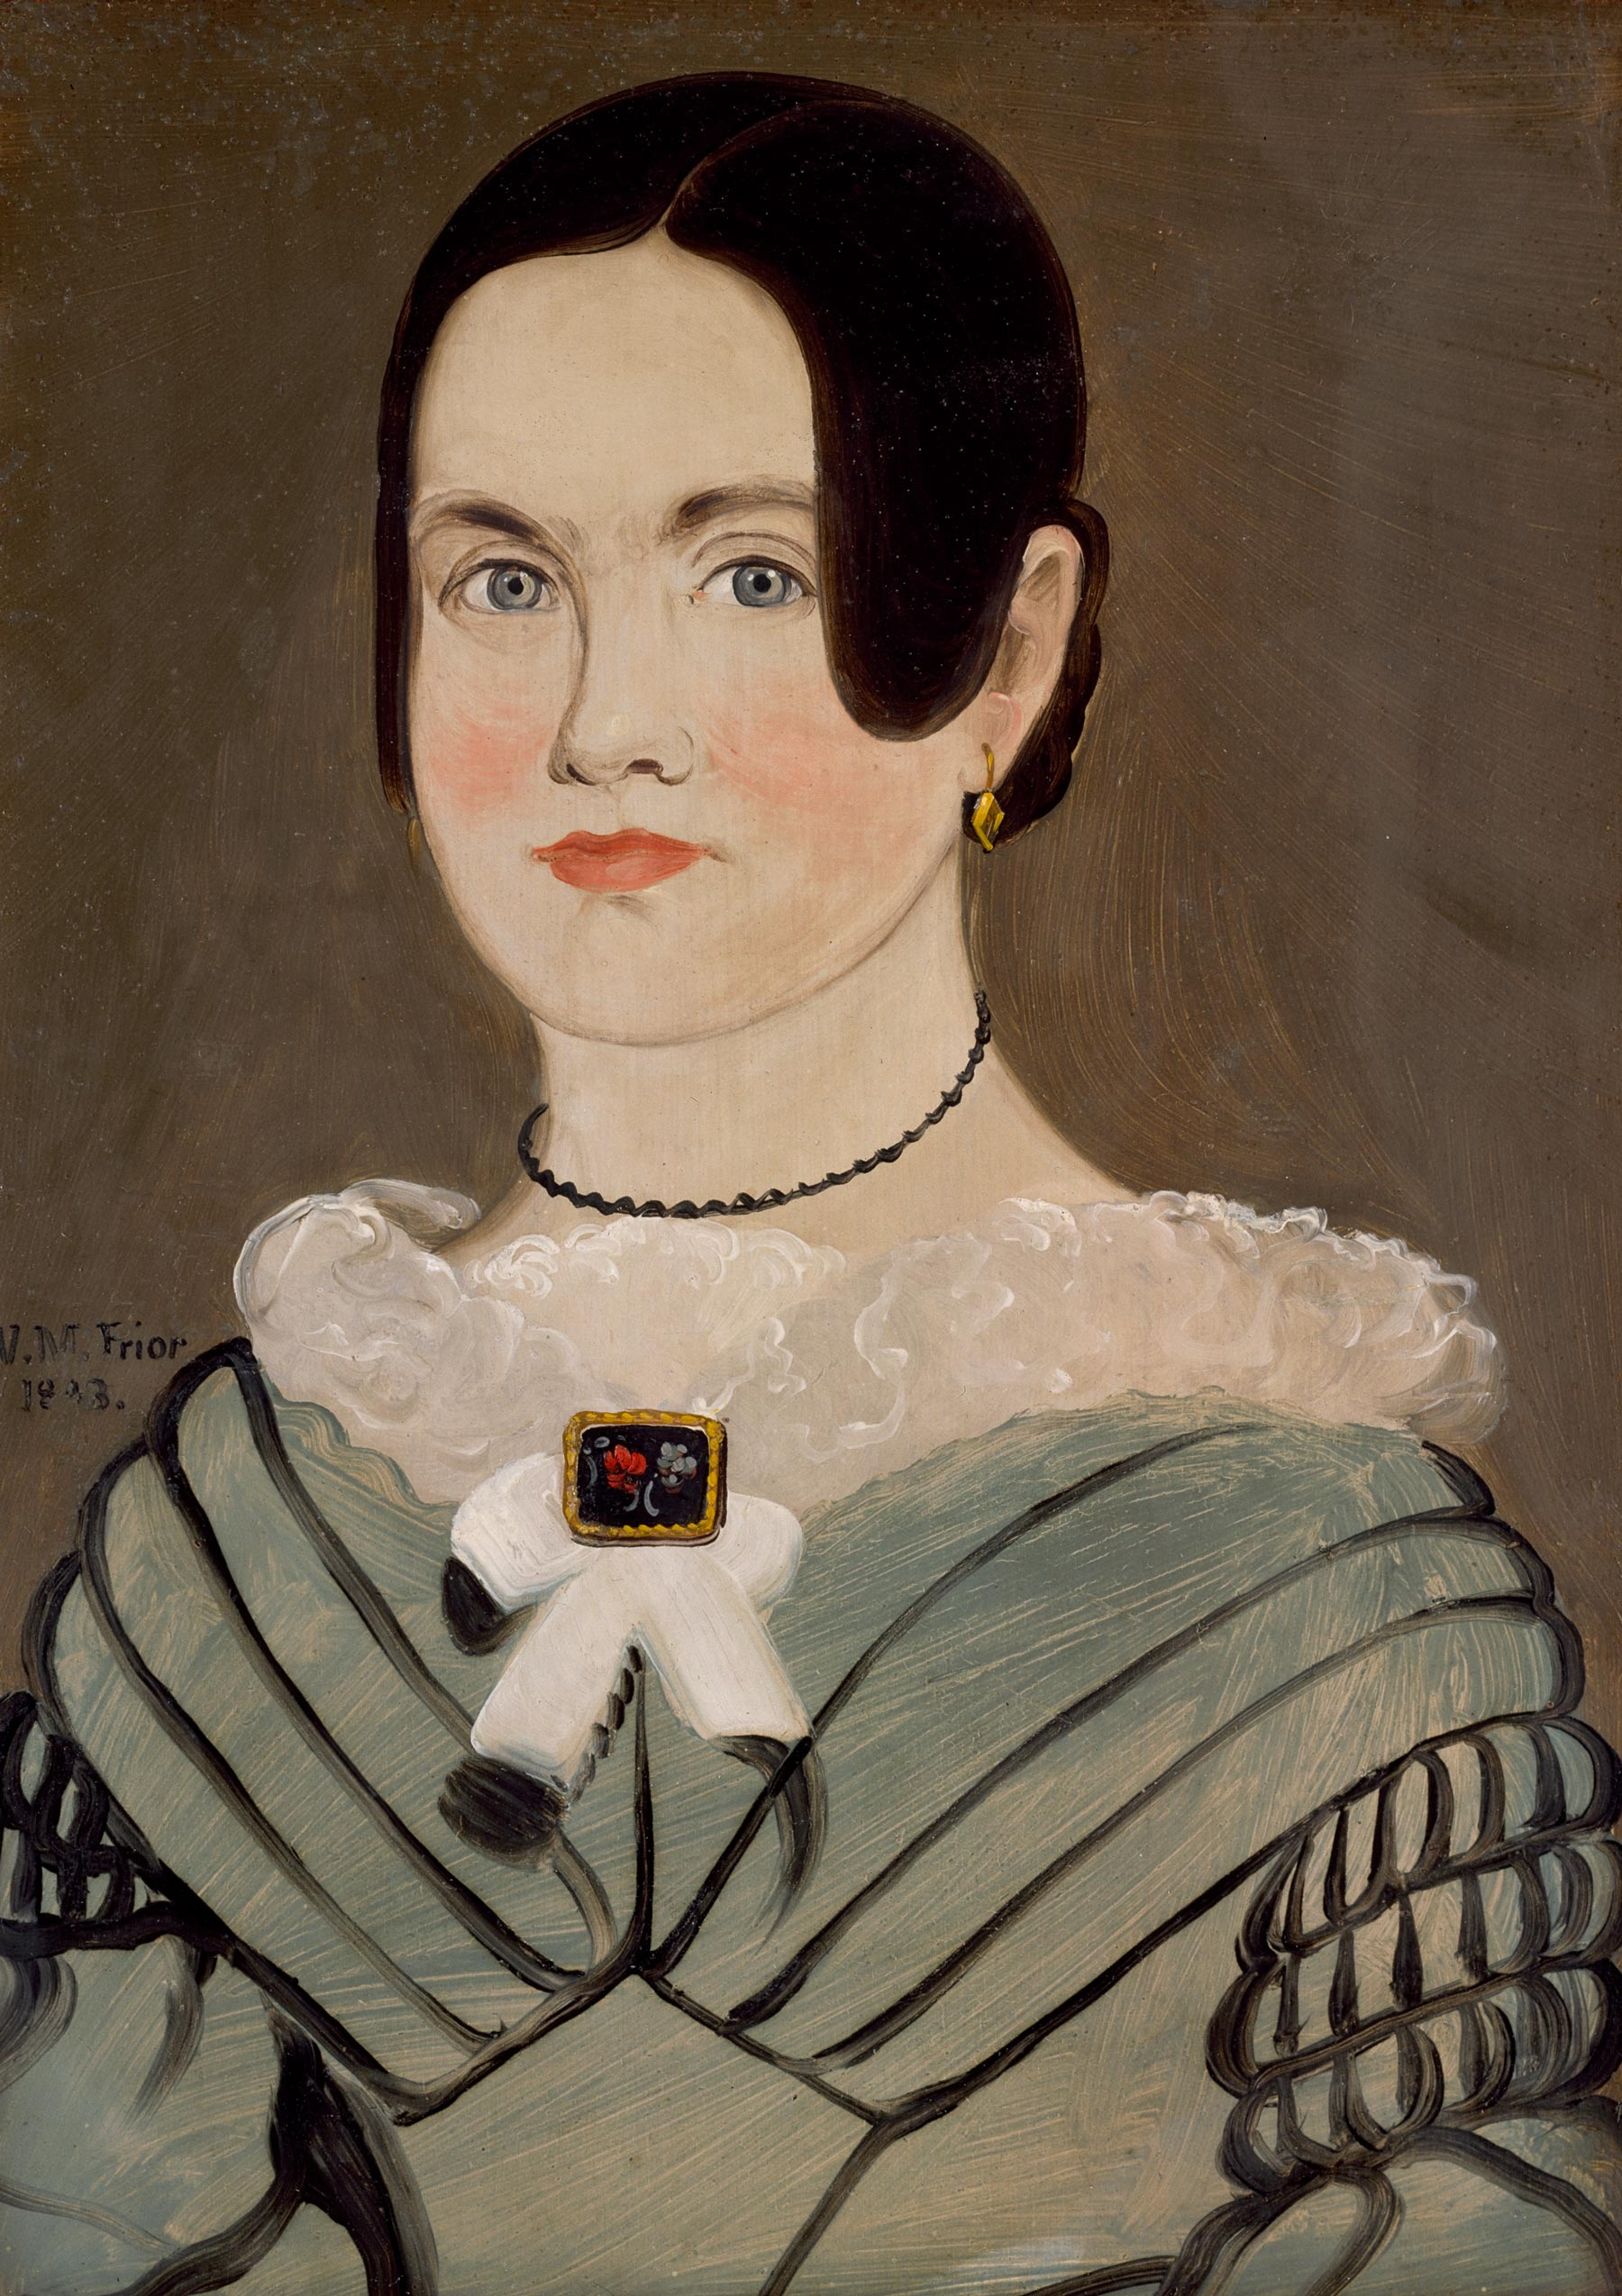 William Matthew Prior (American, 1806–1873), Portrait of Phebe Ann Carlton Hawes (Mrs. Philander Hawes) (1822–1881), Maine or Massachusetts, 1843. Oil on cardboard, 13 ¾ x 9 ⅞ in. (34.9 x 25.1cm). Colonial Williamsburg Foundation, Gift of Dr. and Mrs. Paul Middleton, 1986.100.1.